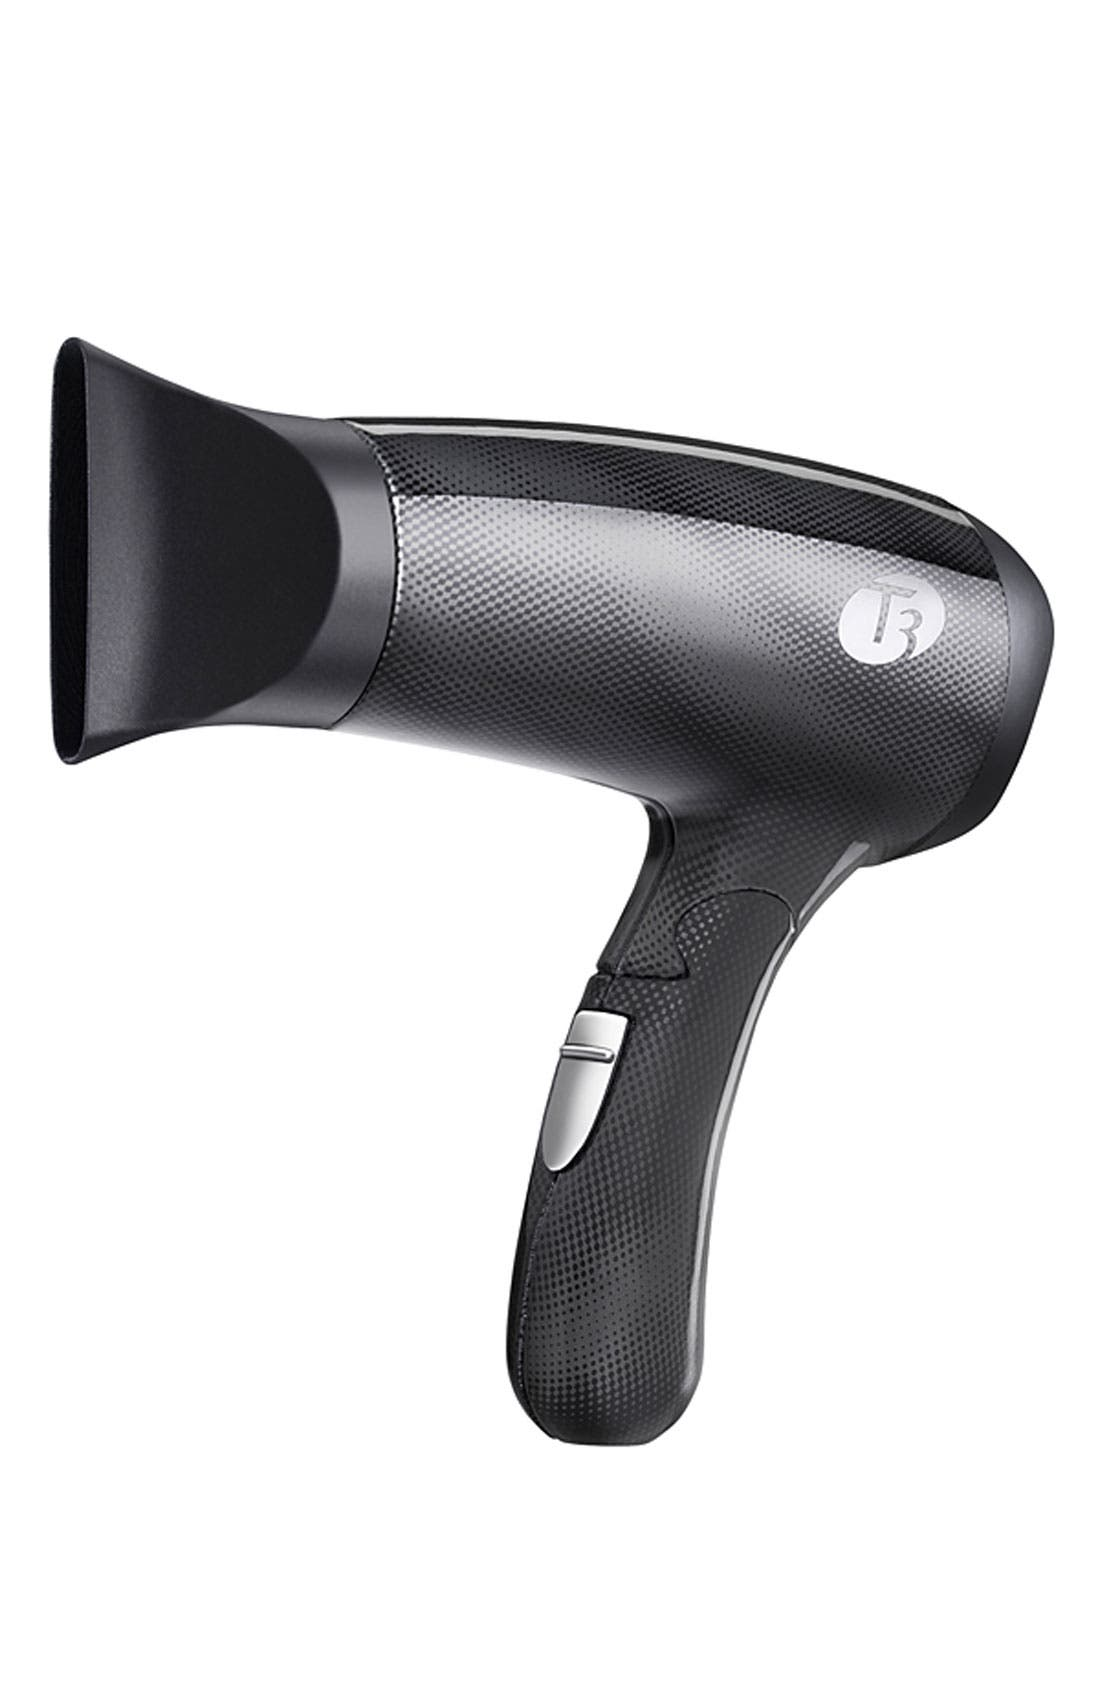 Main Image - T3 'Featherweight Journey' Travel Hair Dryer